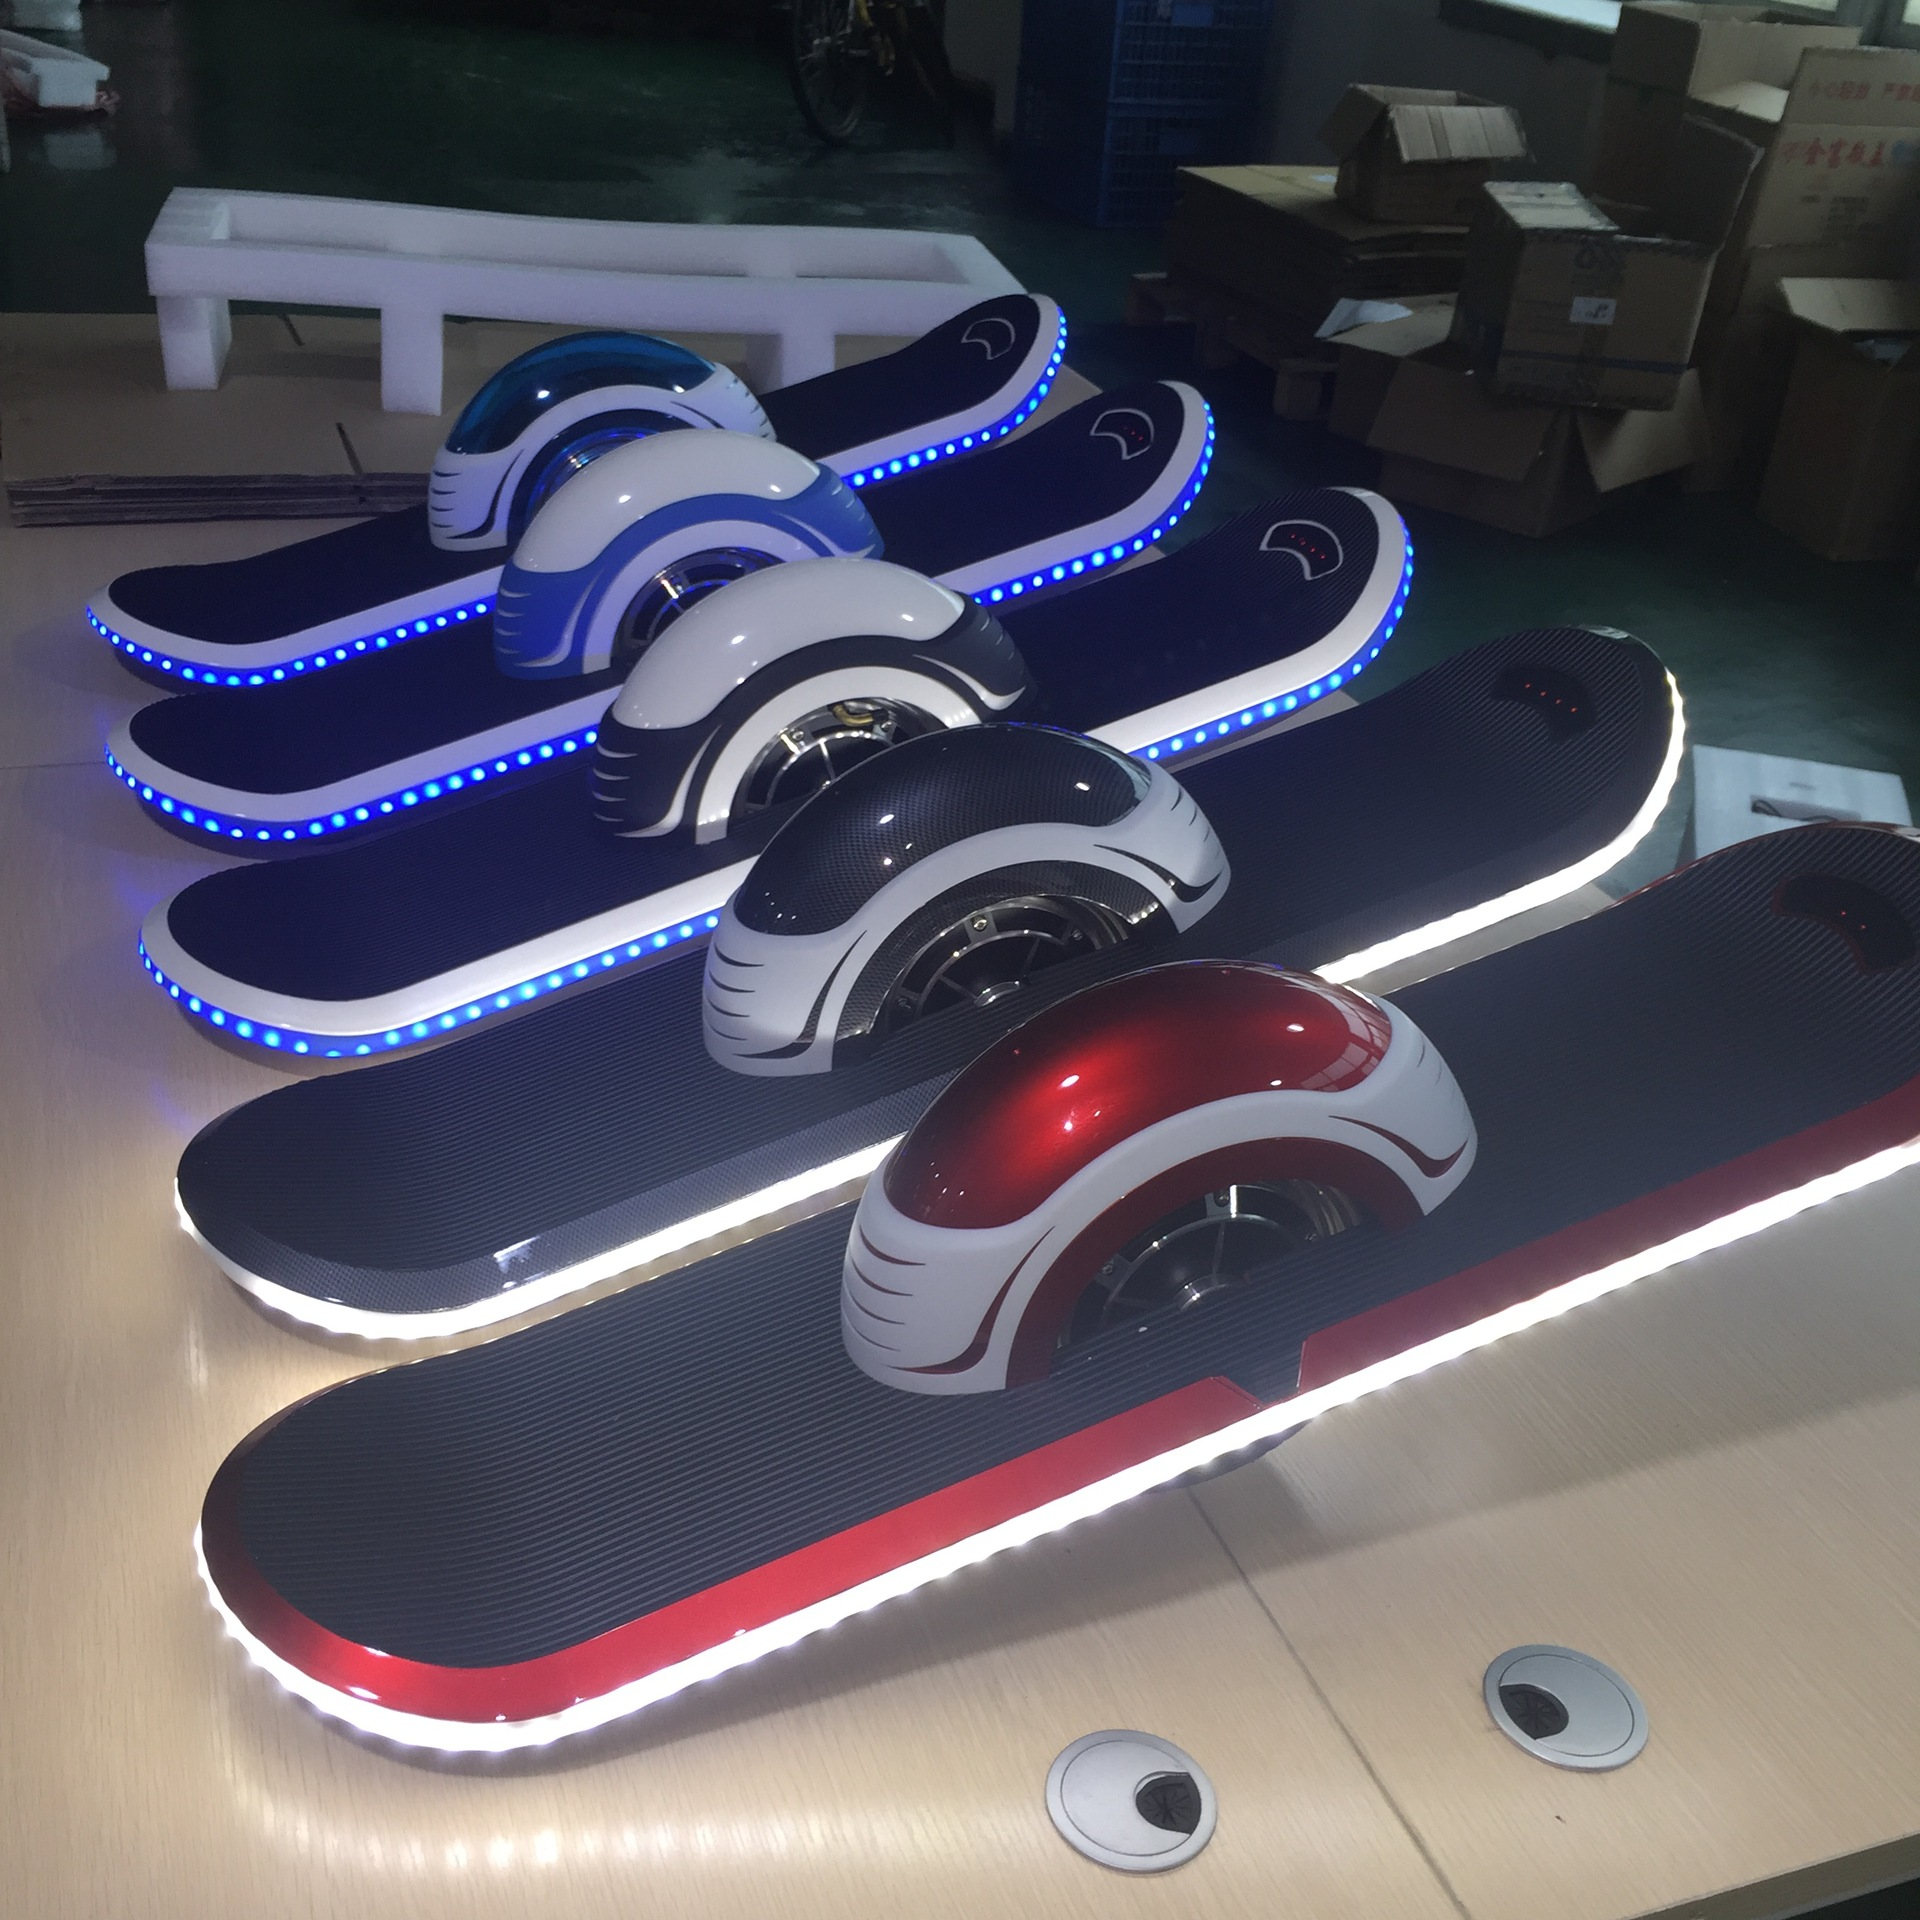 new 10inch samsung battery one wheel wheel electric skateboard hoverboard ue vacuum. Black Bedroom Furniture Sets. Home Design Ideas